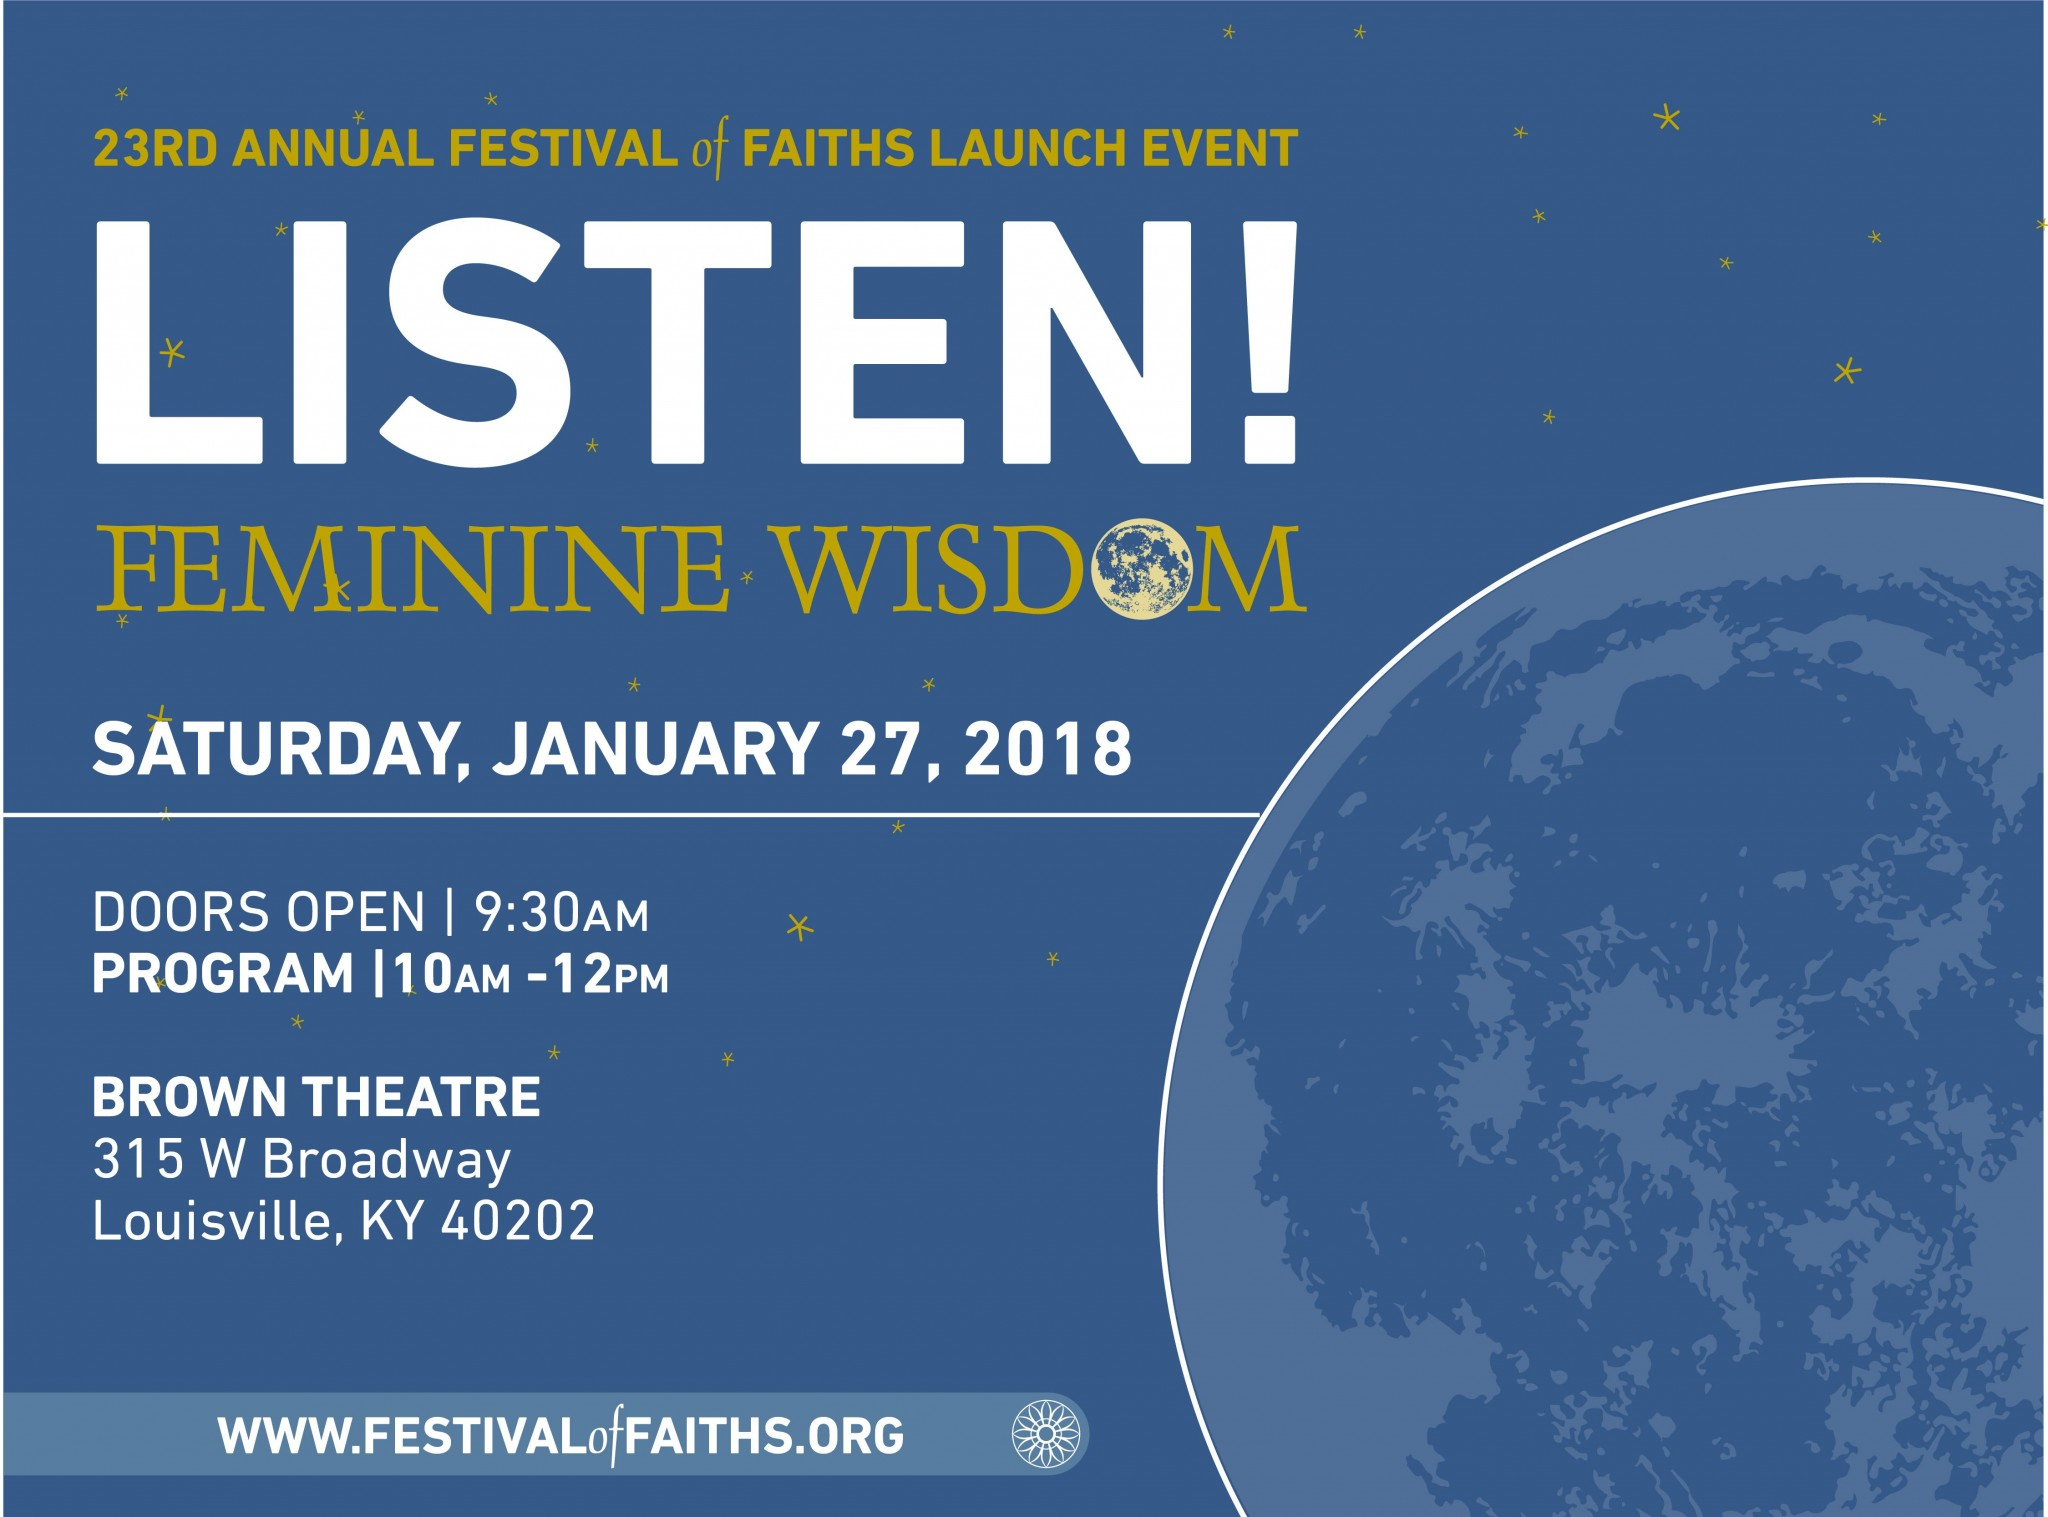 23rd Annual Festival of Faiths Launch Event | LISTEN! Feminine Wisdom January 27th at the Brown Theatre